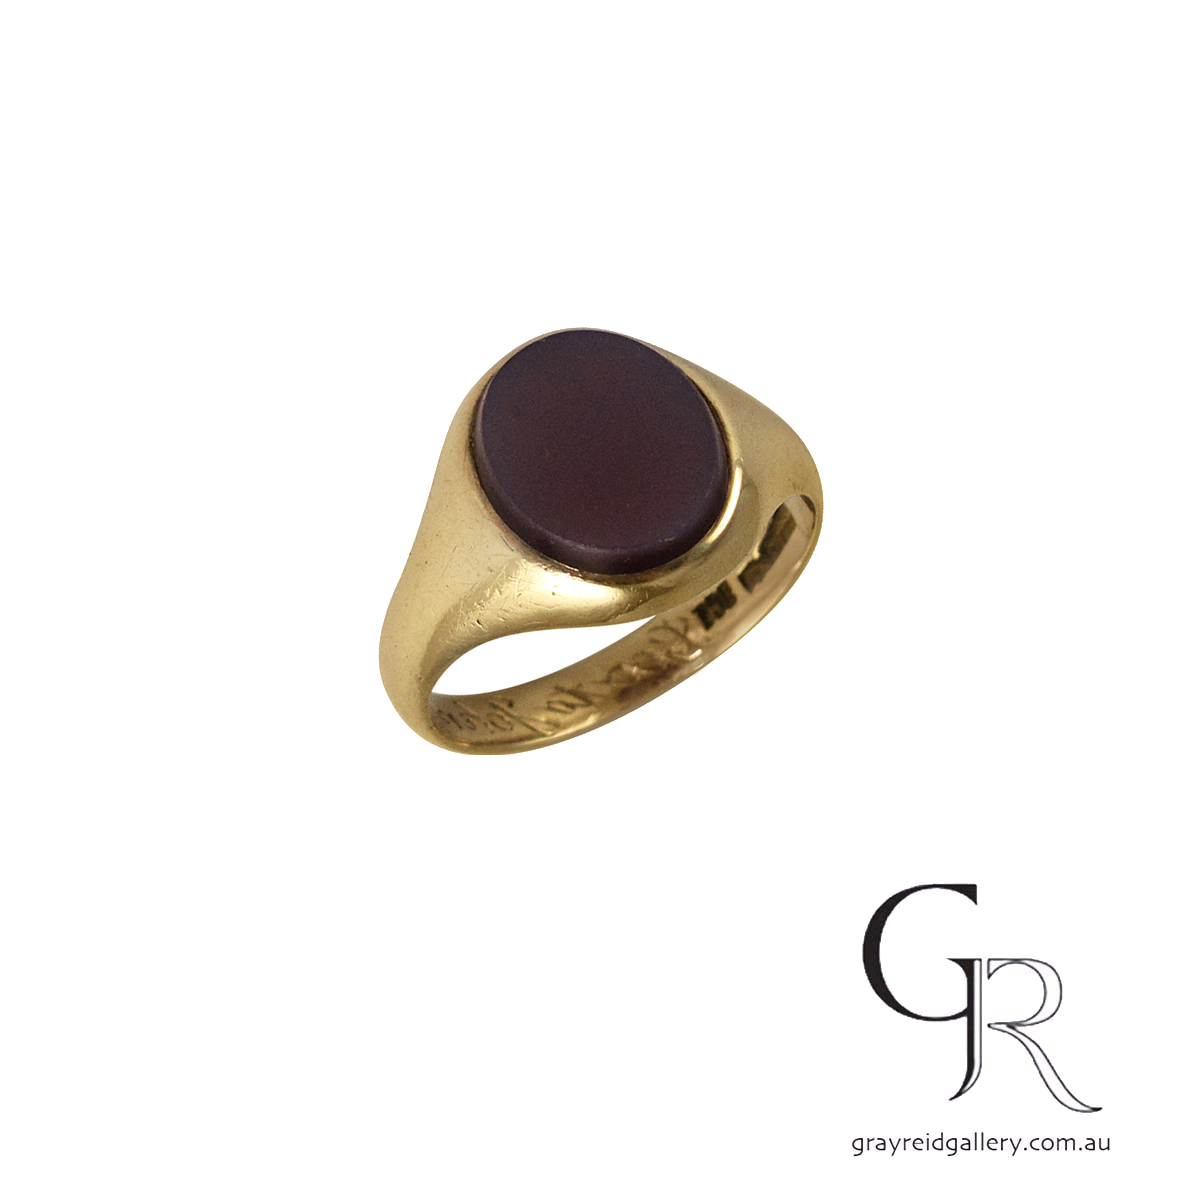 signet rings melbourne custom made gray reid gallery Carnelian.jpg